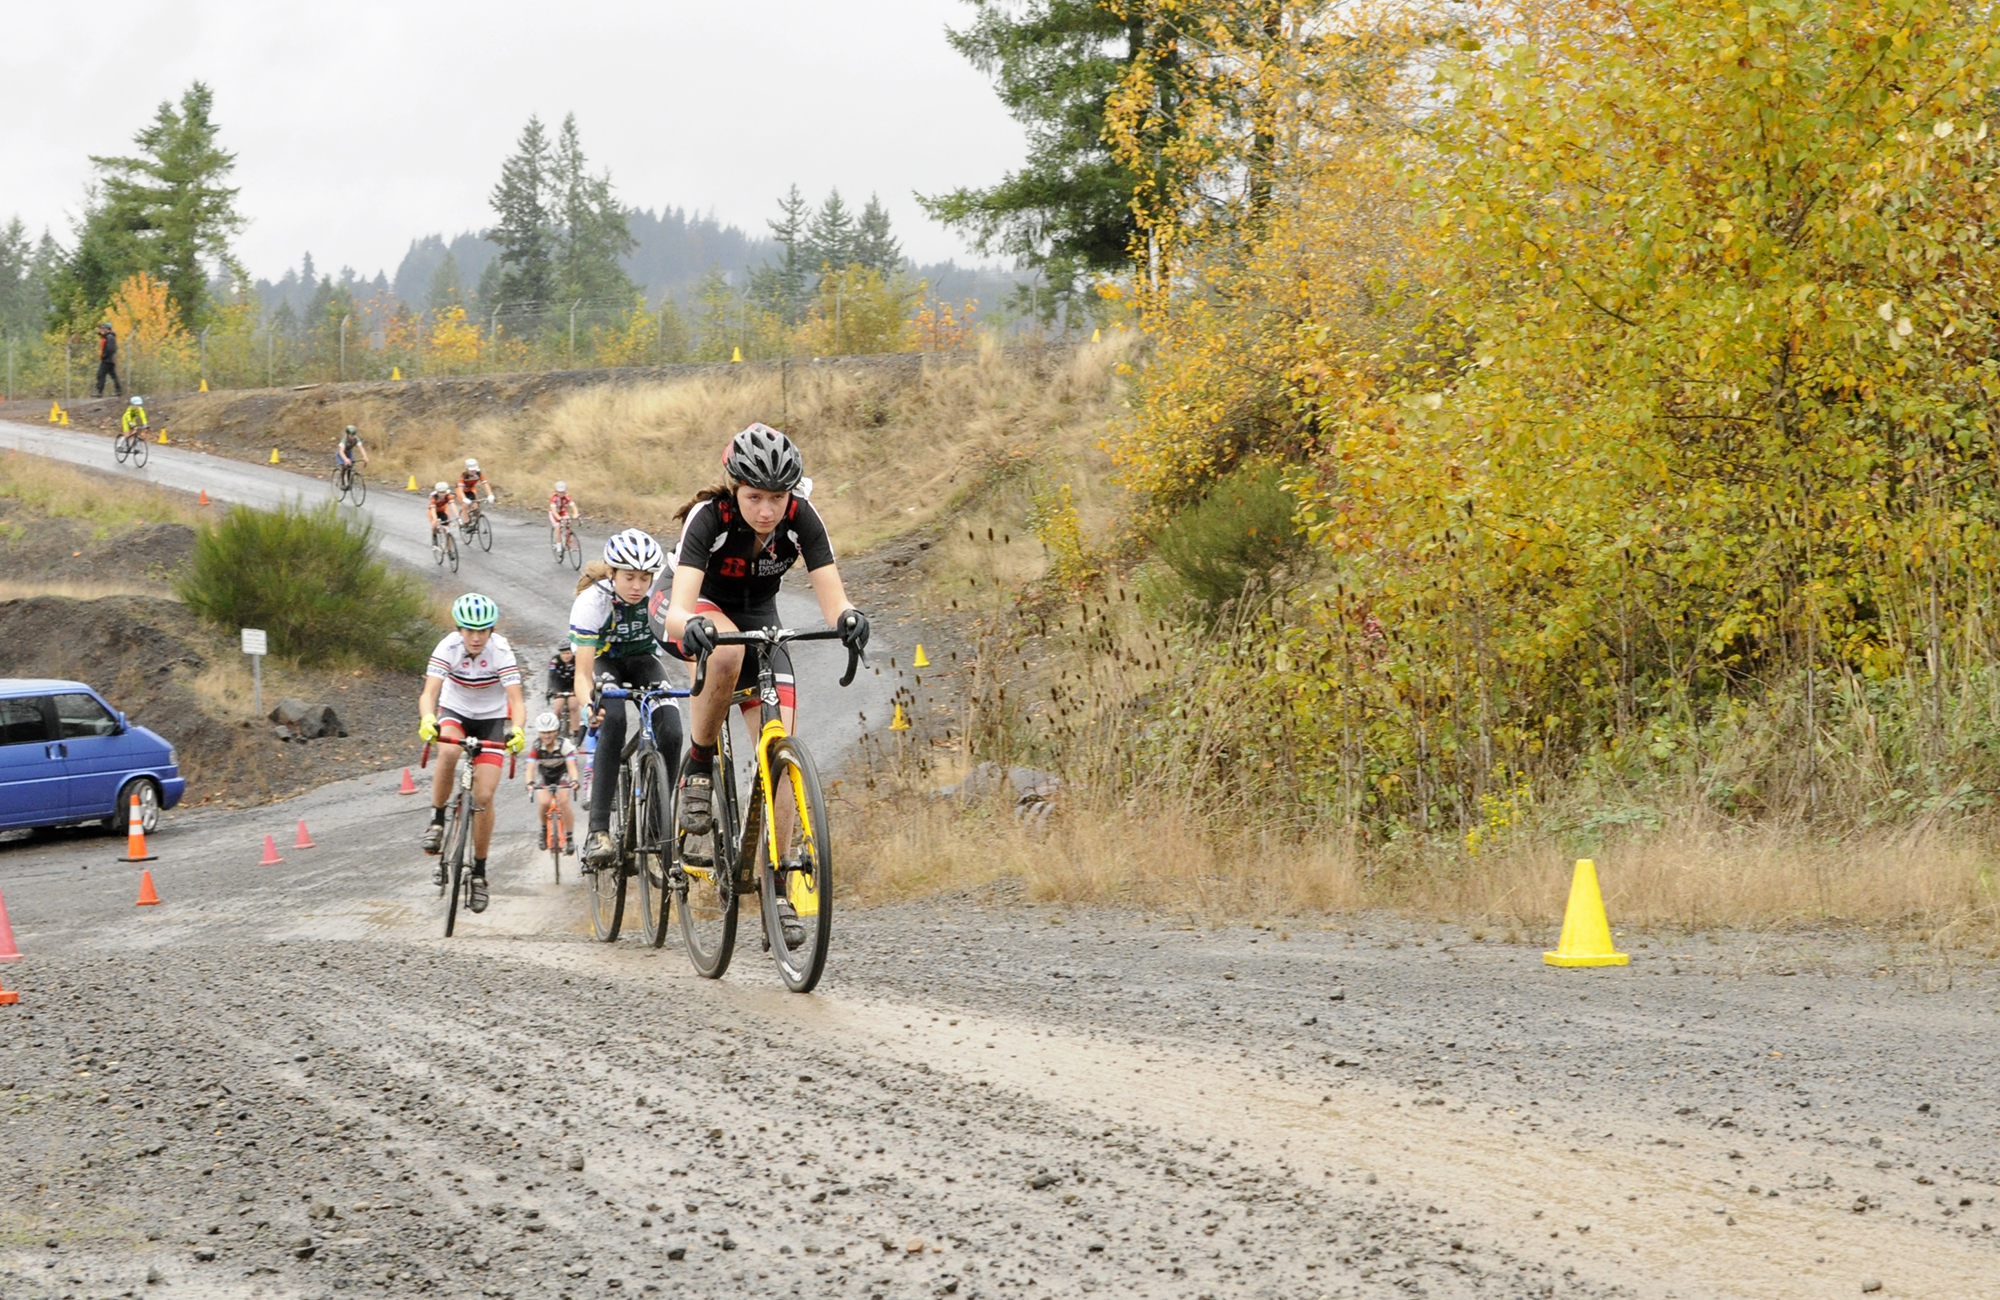 SellwoodCycle_CCBP_11